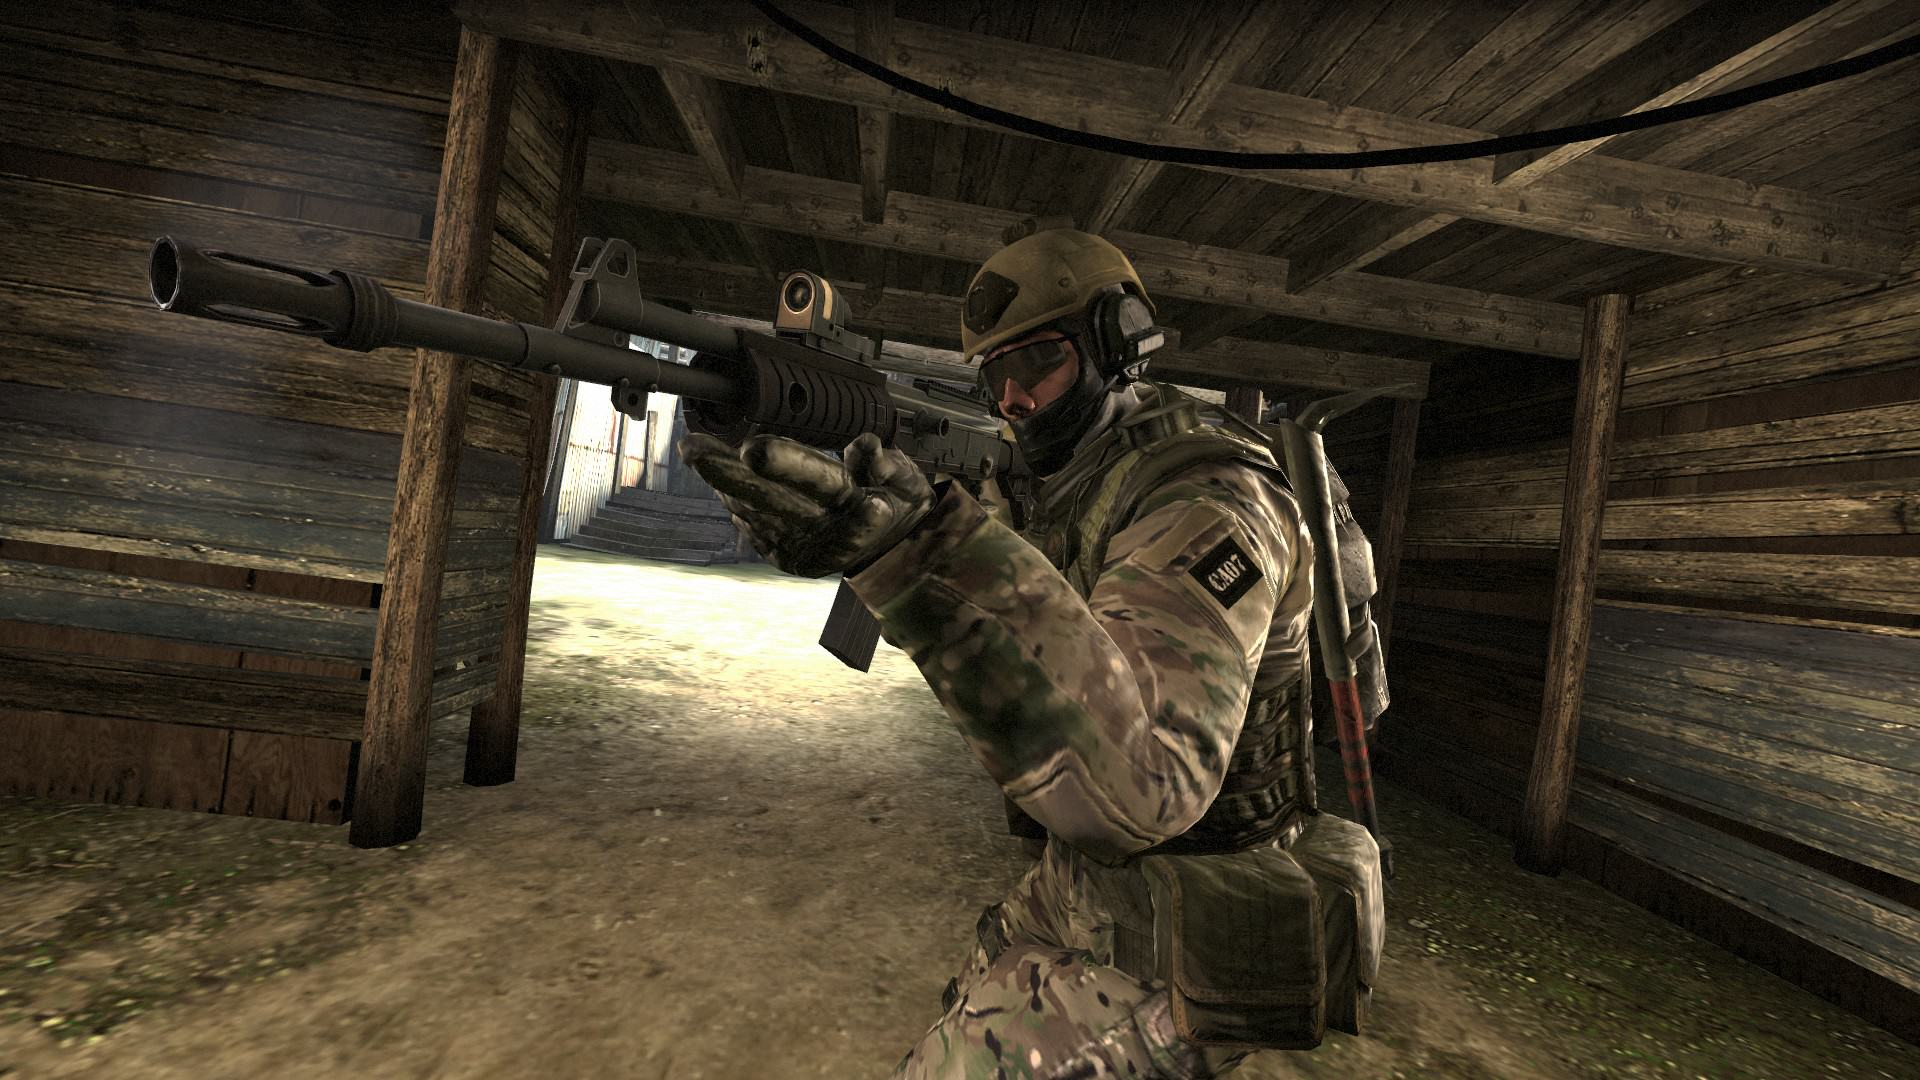 0c516c21ef560c3e799e2c3409620f7ee41b3f28 1 Fan Puts Love/Hate Relationship With Counter Strike Into Song